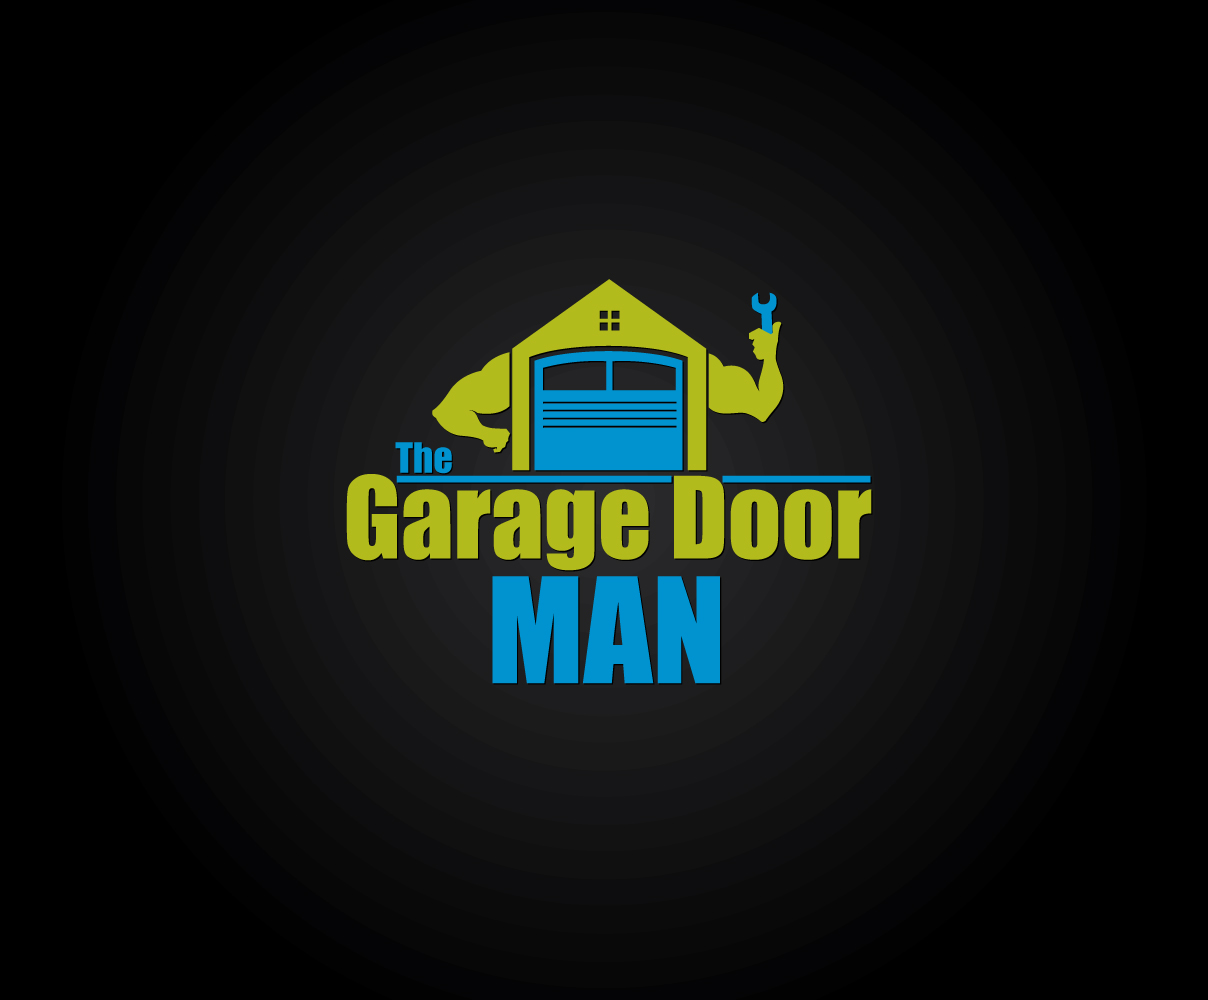 Logo Design By Graphicsexpert For The Garage Door Man | Design #16893821